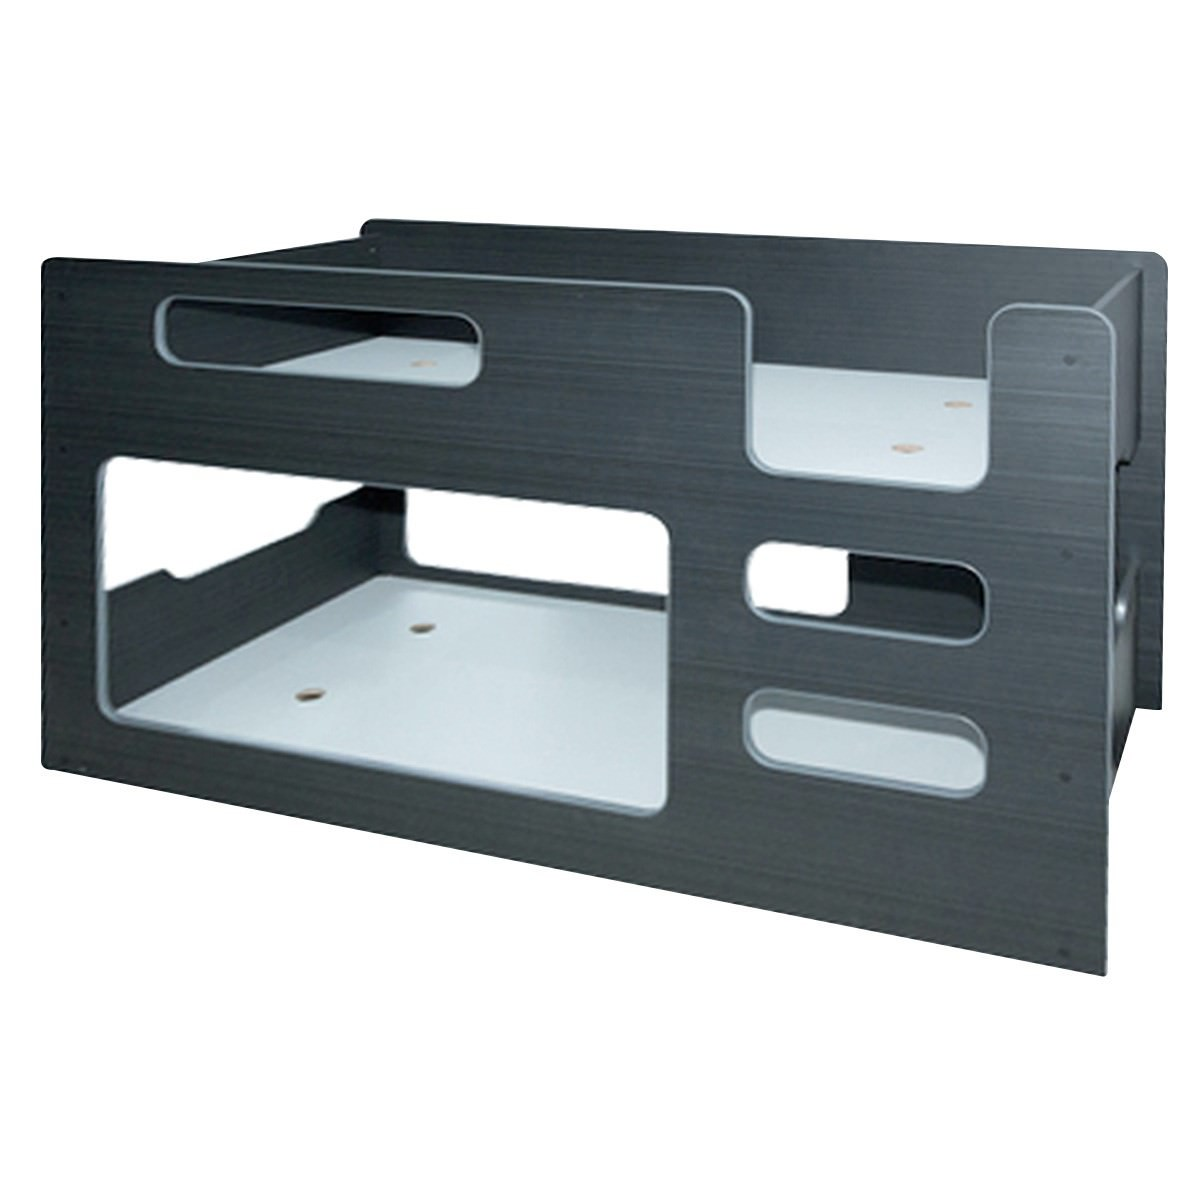 Domino Bunk Bed, Single, Charcoal